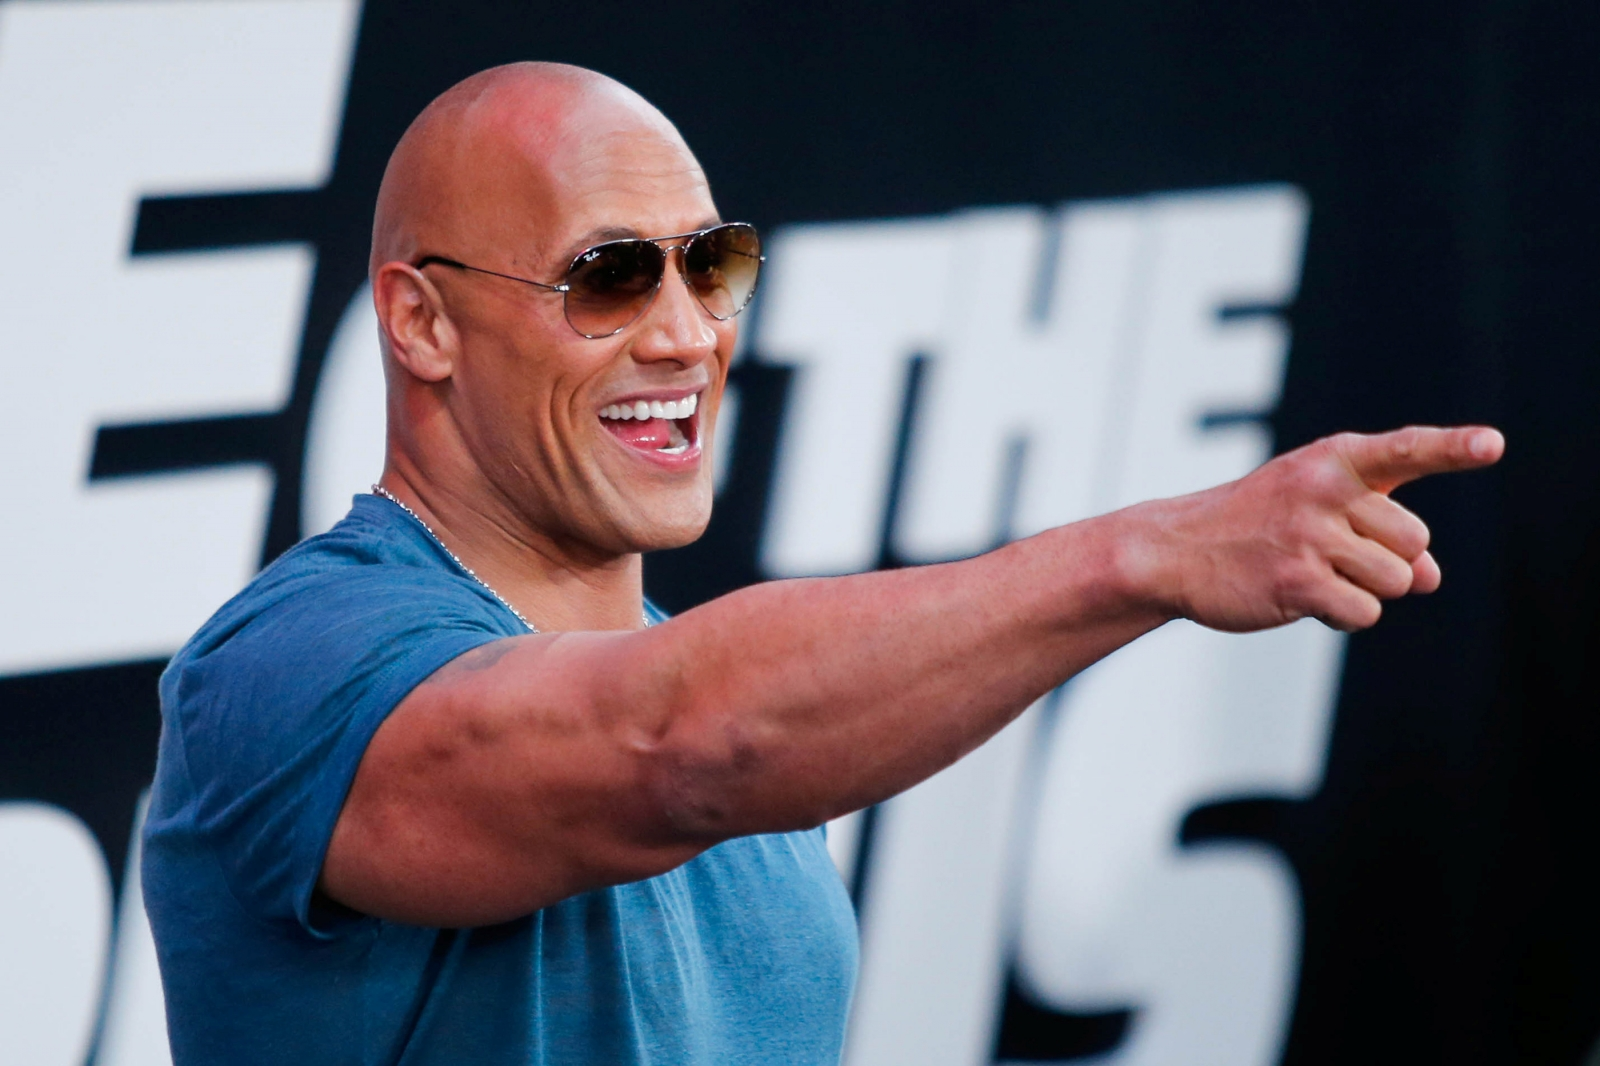 Could 'The Rock' Be Our The Next President?